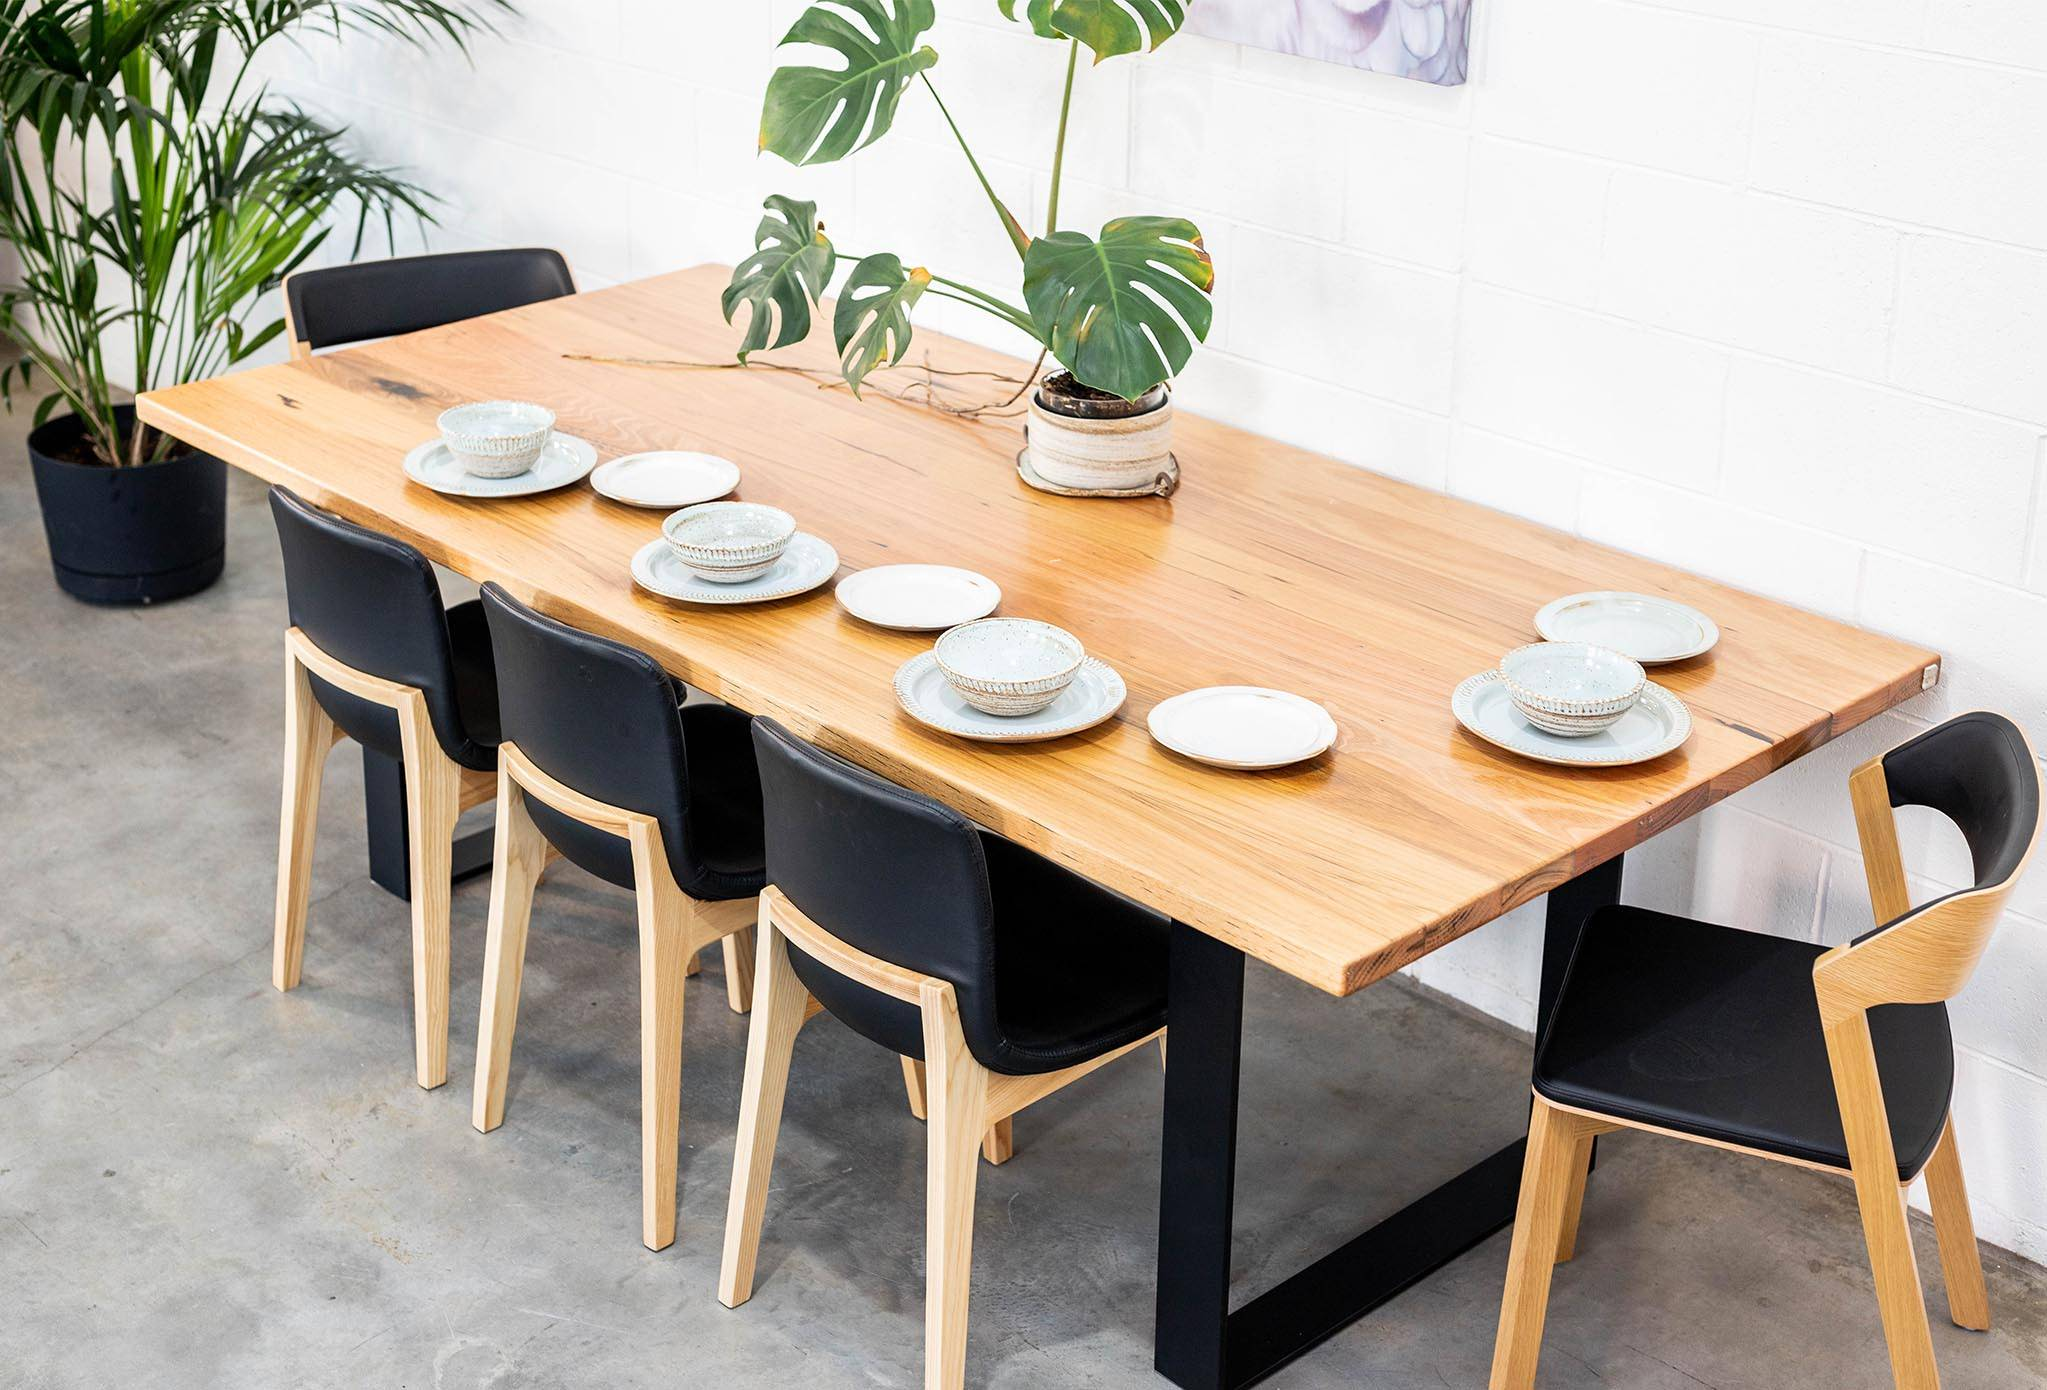 Straightboard Stringybark Clean and Clear. Black Steel Box Ends Dining Table